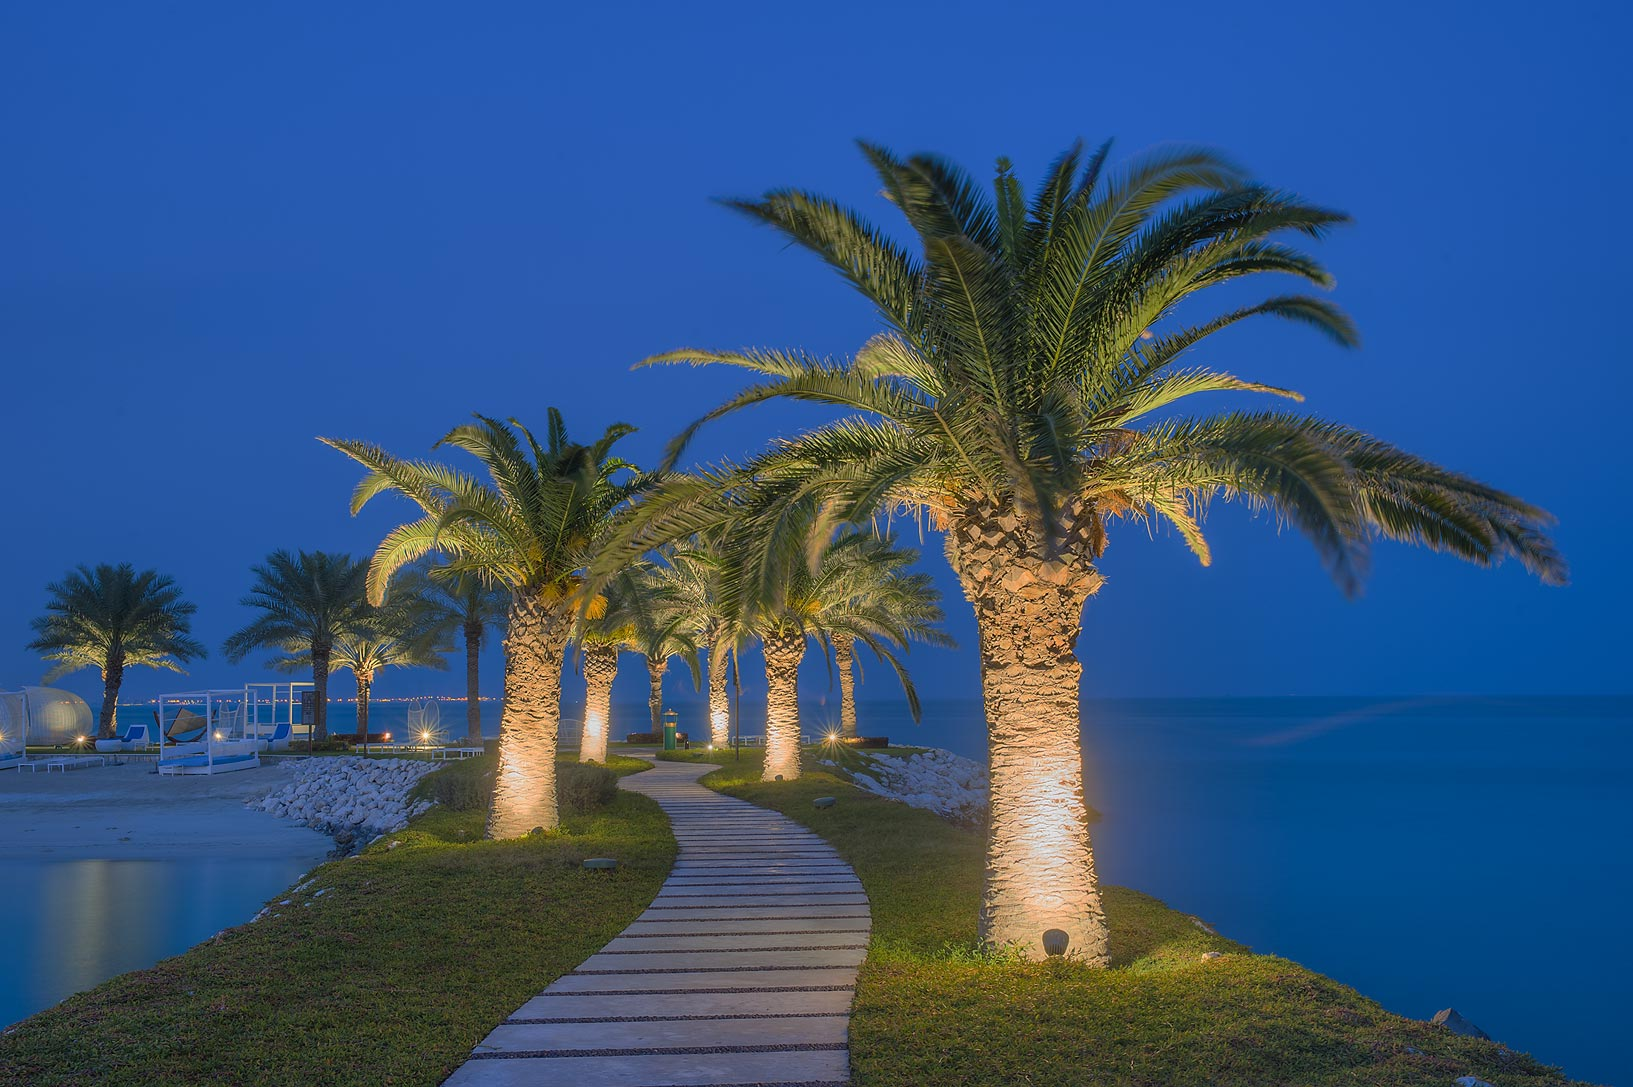 Palm alley on a beach of Sheraton Hotel in West Bay. Doha, Qatar